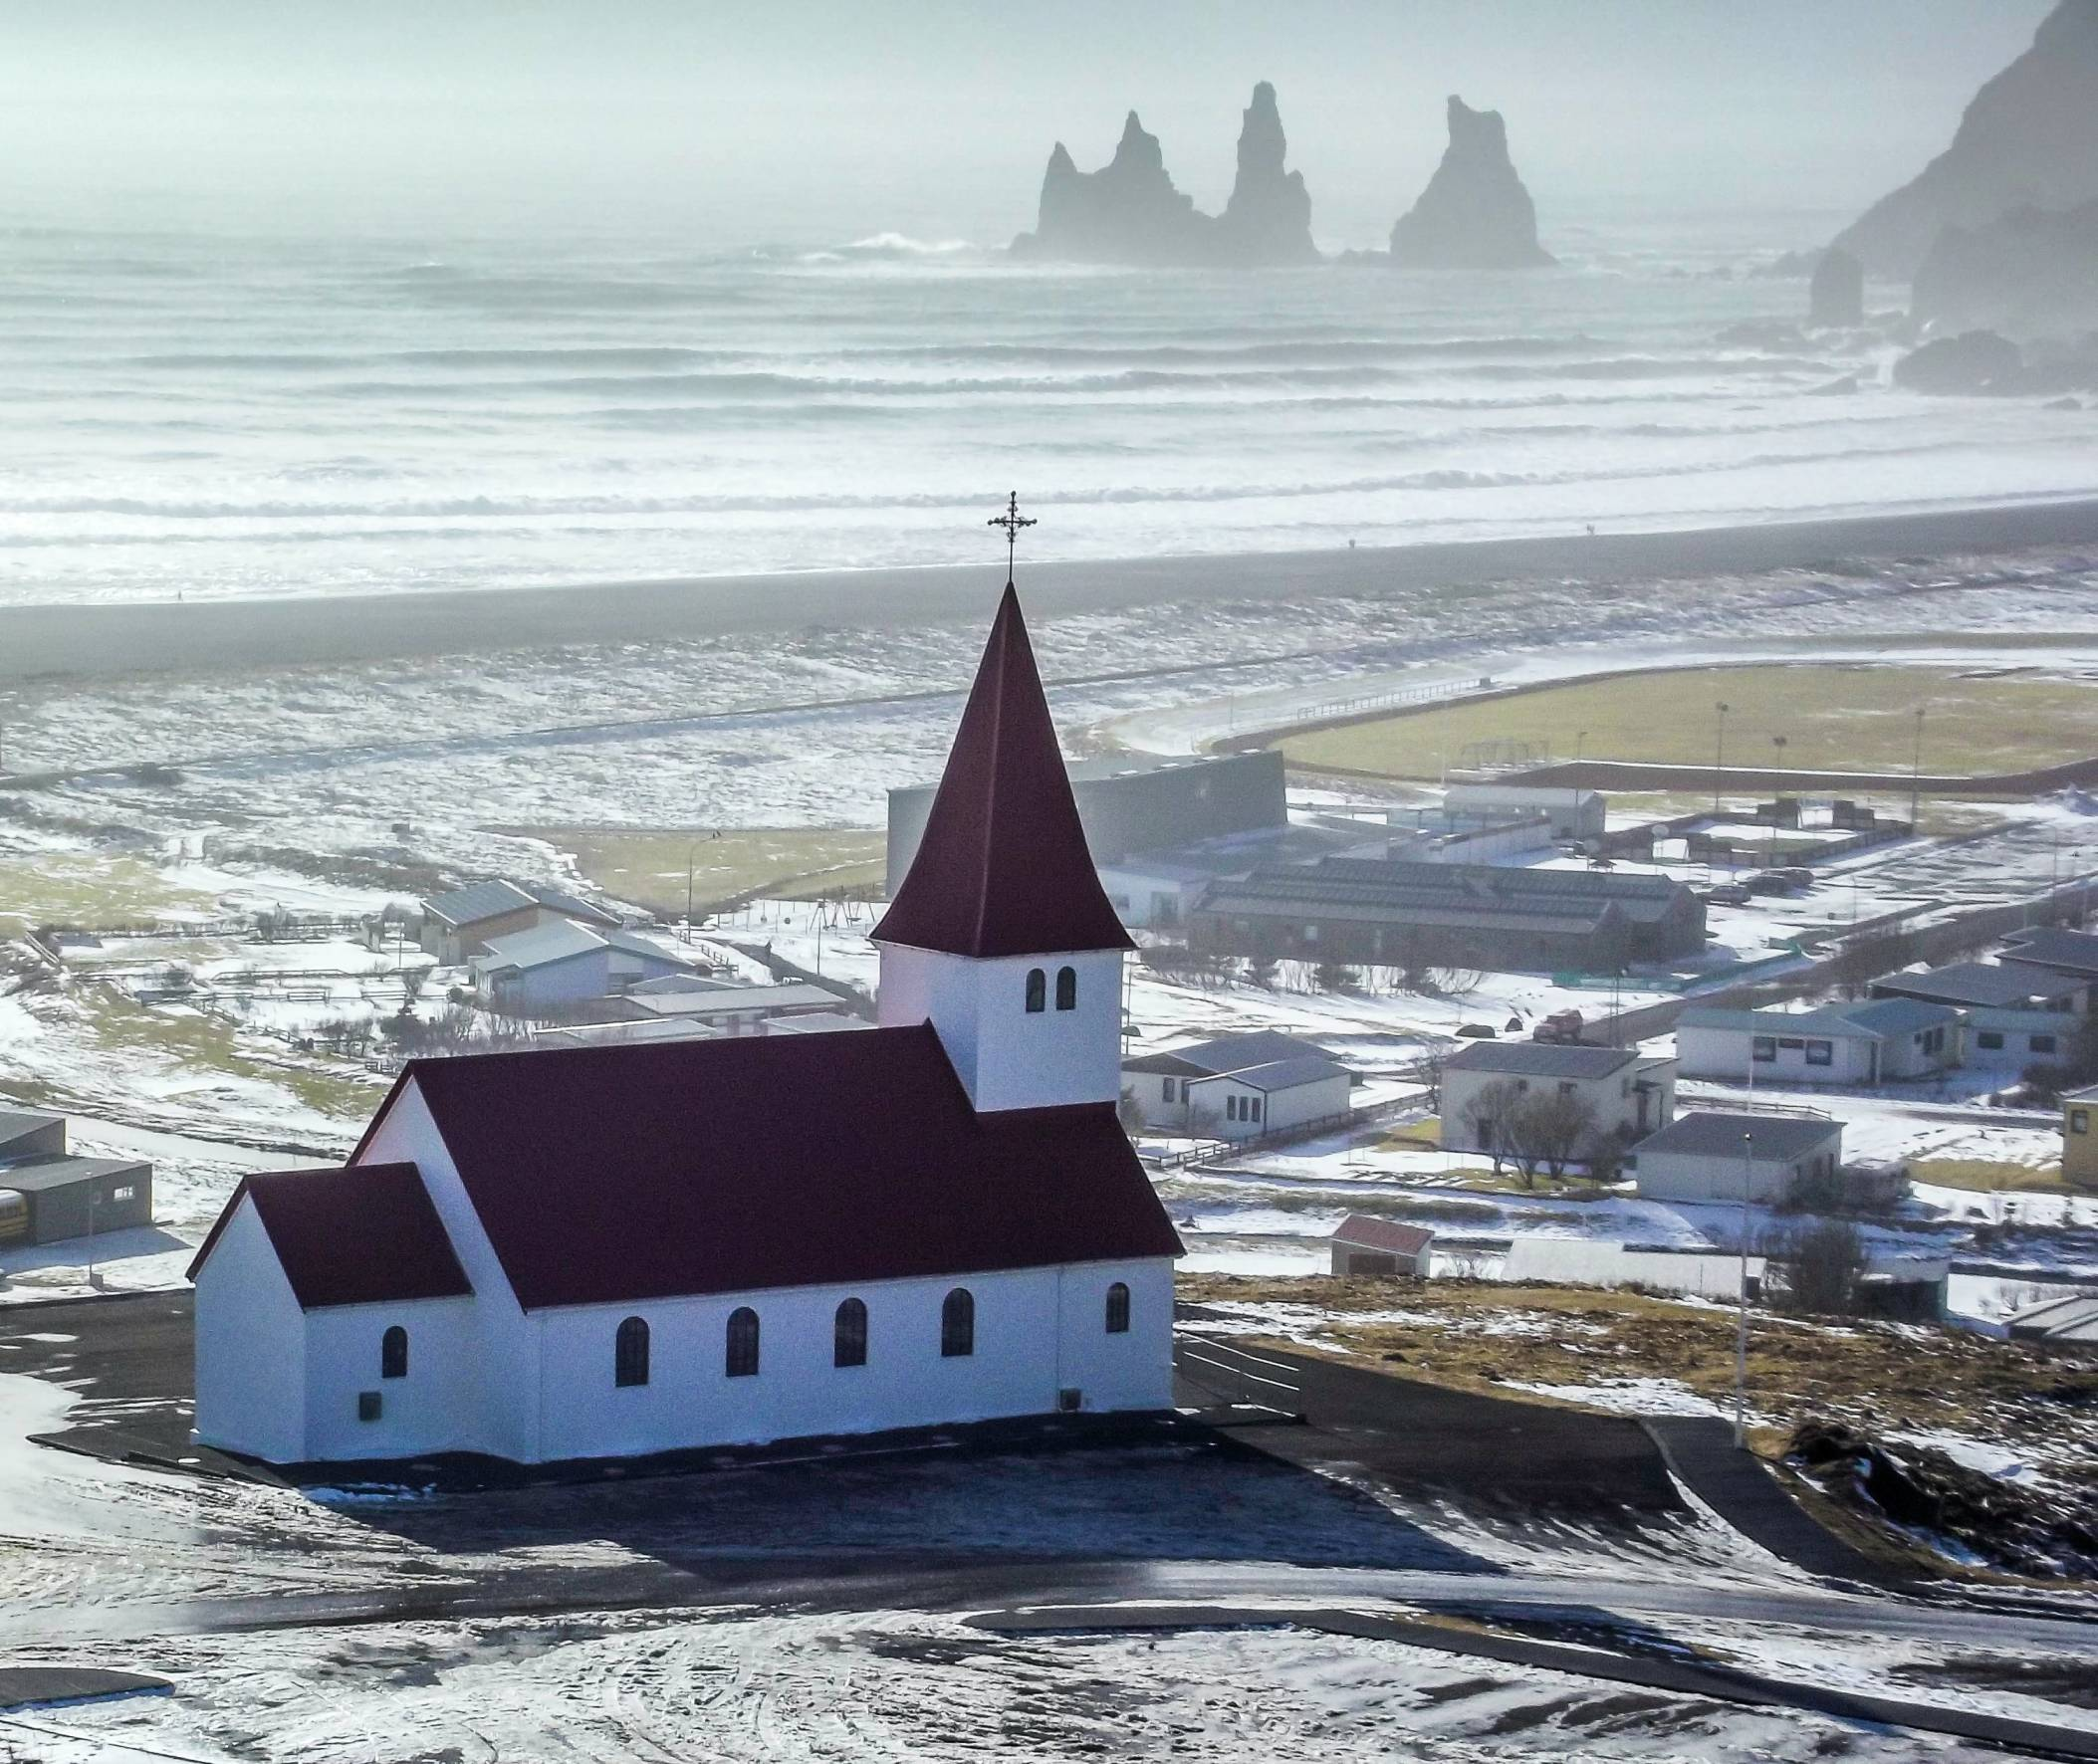 vik-church-with-town-and-reynisfjara-in-background-on-a-moody-rainy-day